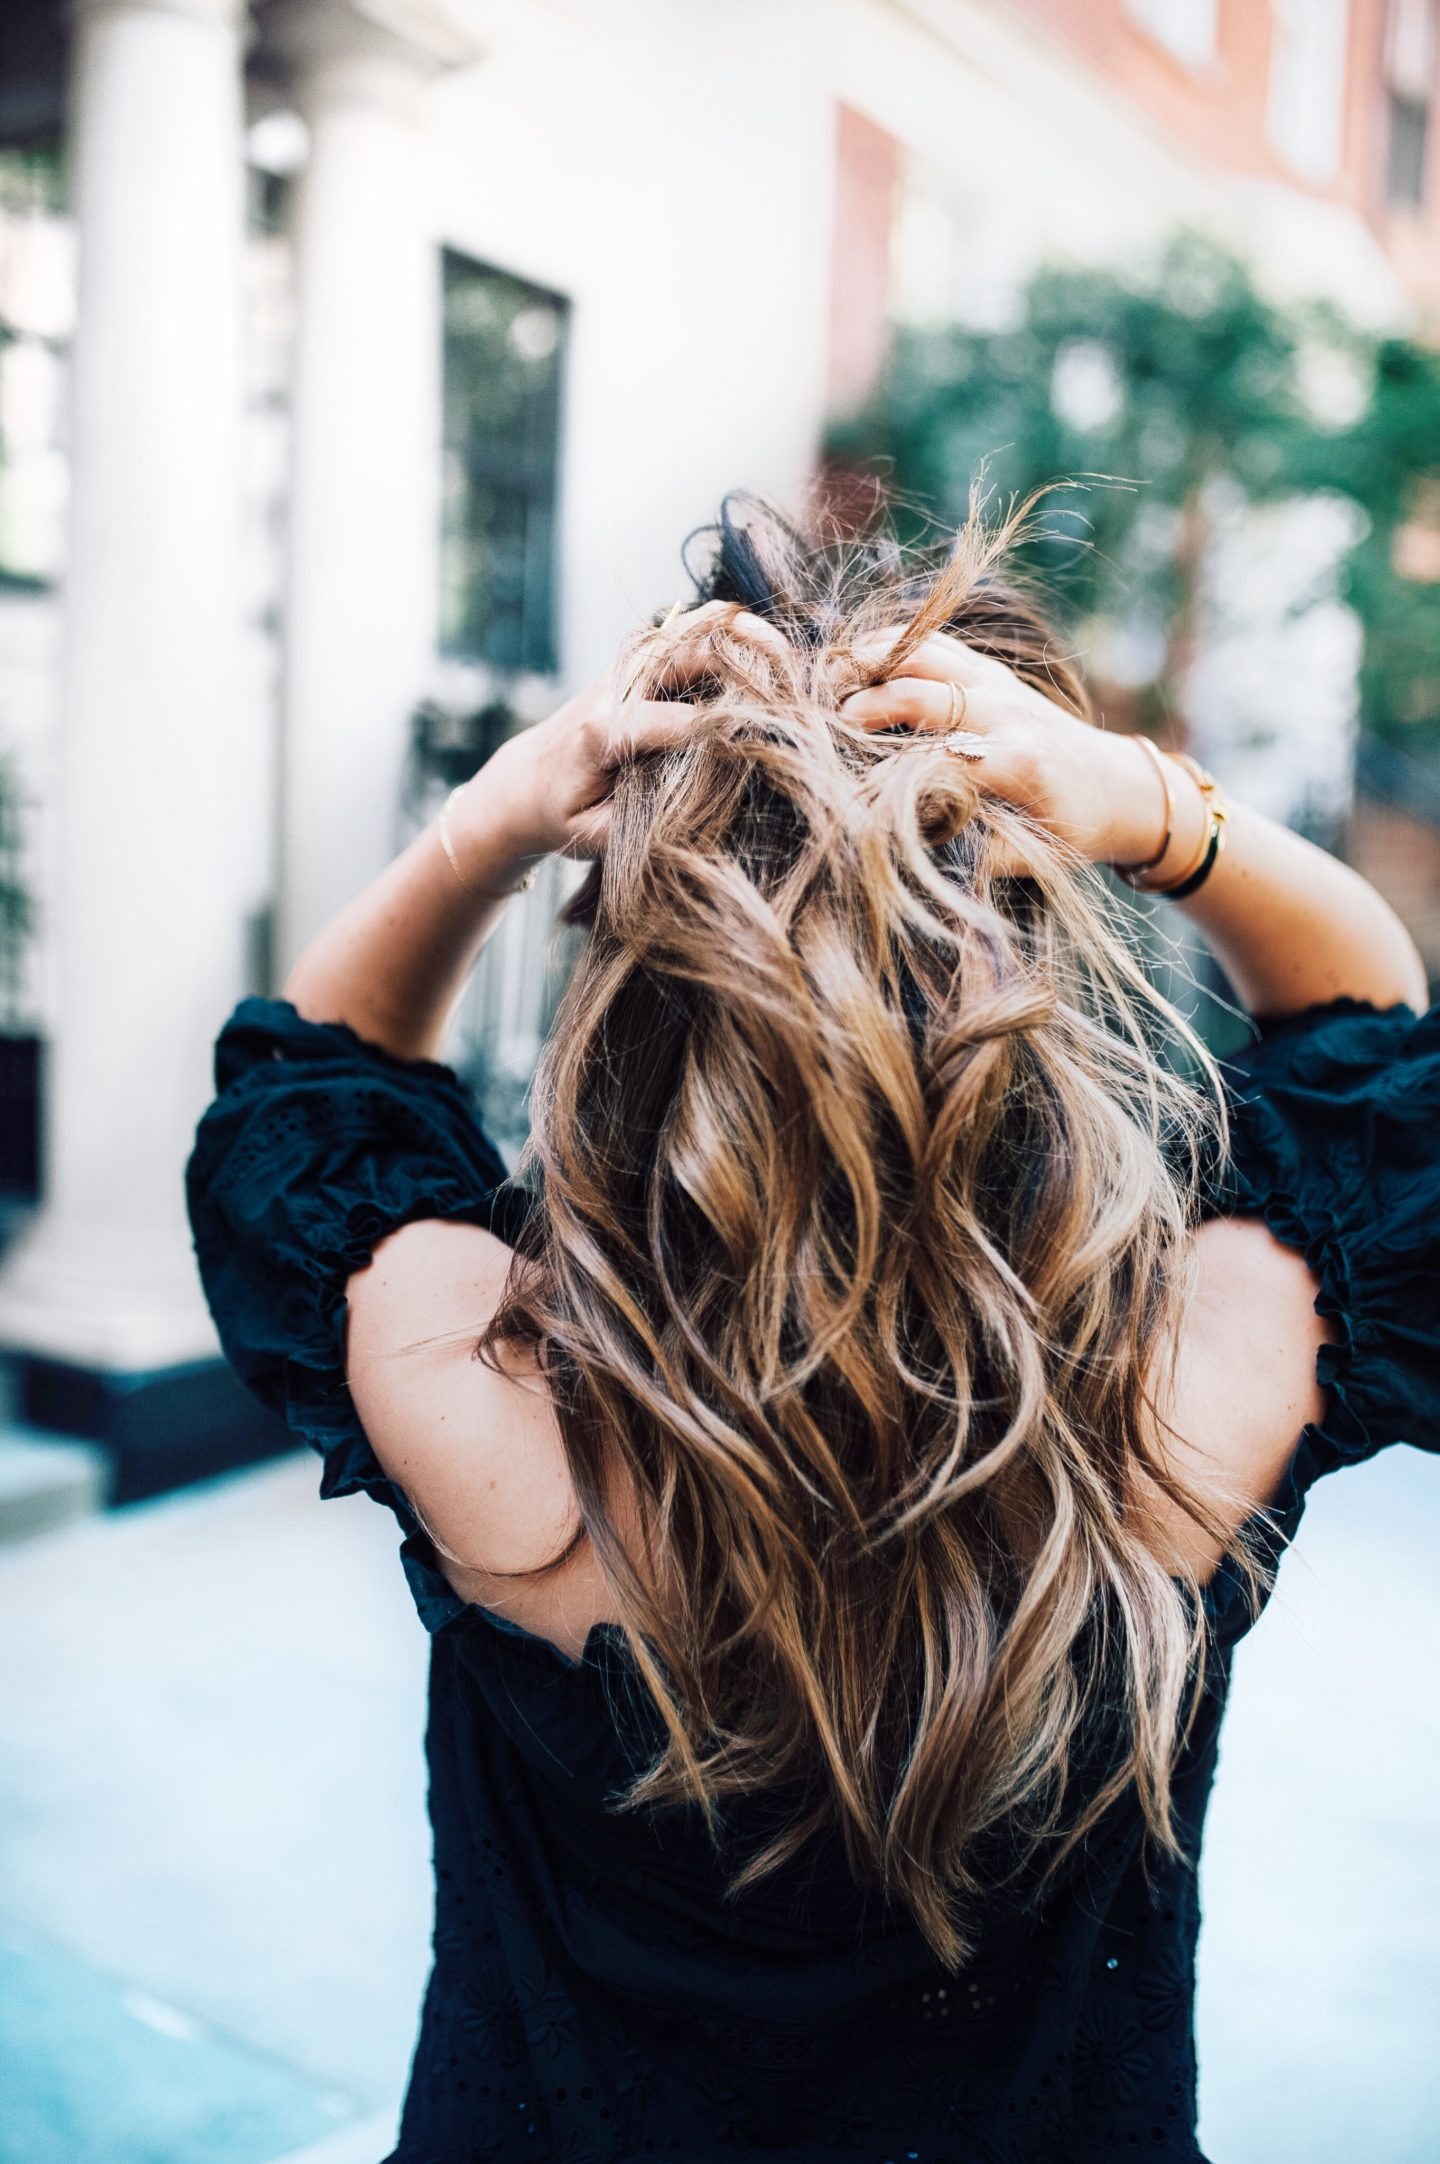 Hair Tips from one of NYC's Top Stylists: Going from Brunette to Balayage